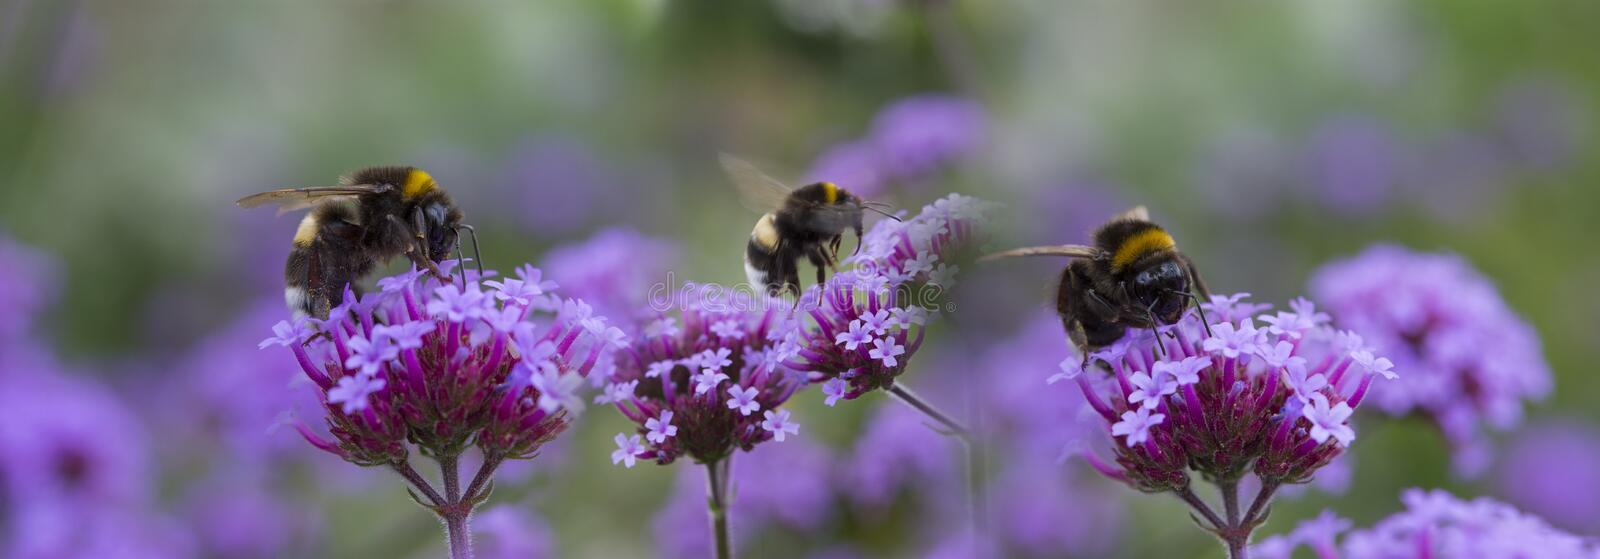 Bumblebees on the garden flower. Macro photo royalty free stock images